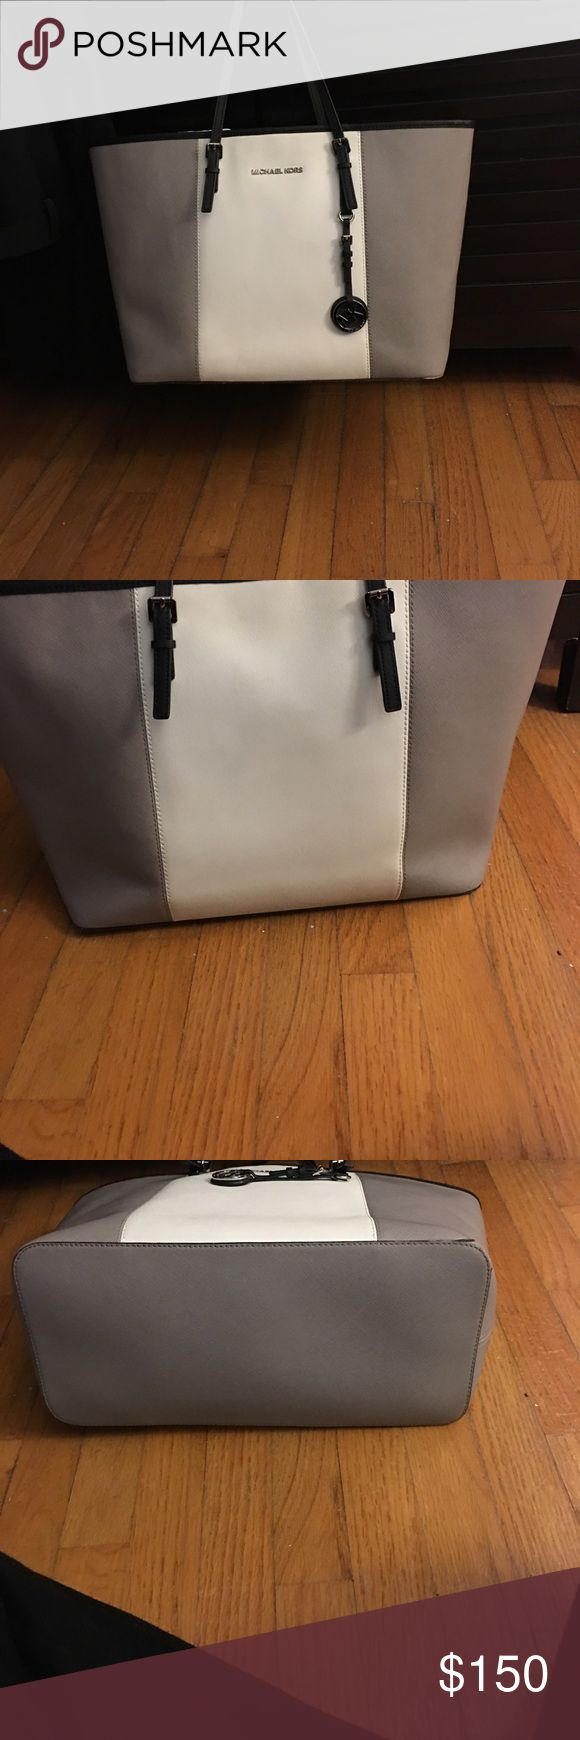 Michael Kors Jetset Tote Gorgeous gorgeous purse!! I always got compliments when I wore it! It's in excellent condition except the one spot on the bottom no sign of wear except for that. Make me an offer 😉🙃 Michael Kors Bags Totes